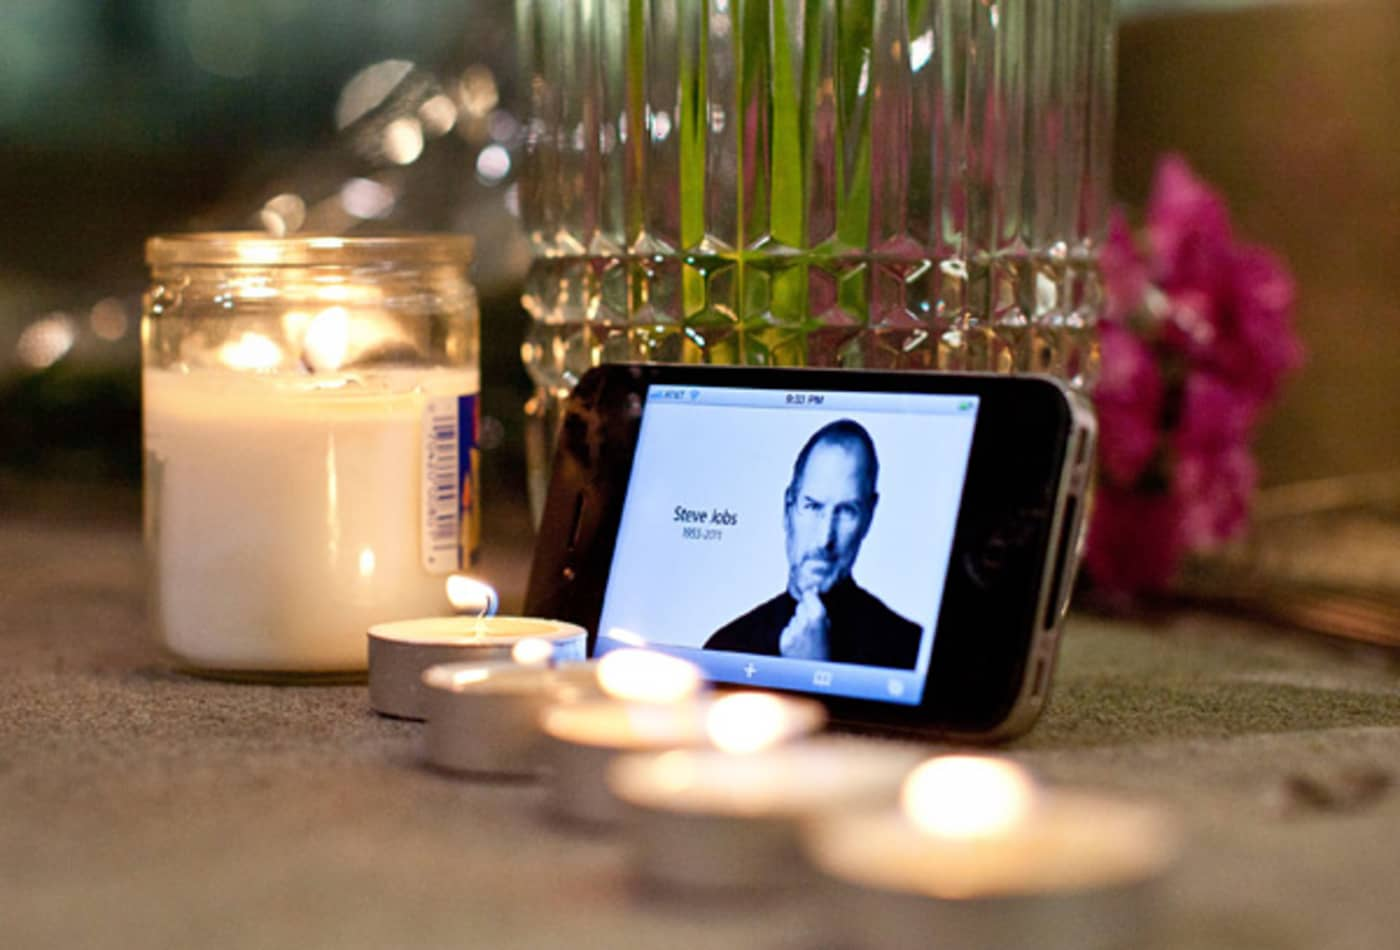 steve-jobs-passed-away-remembering-cnbc-3.jpg